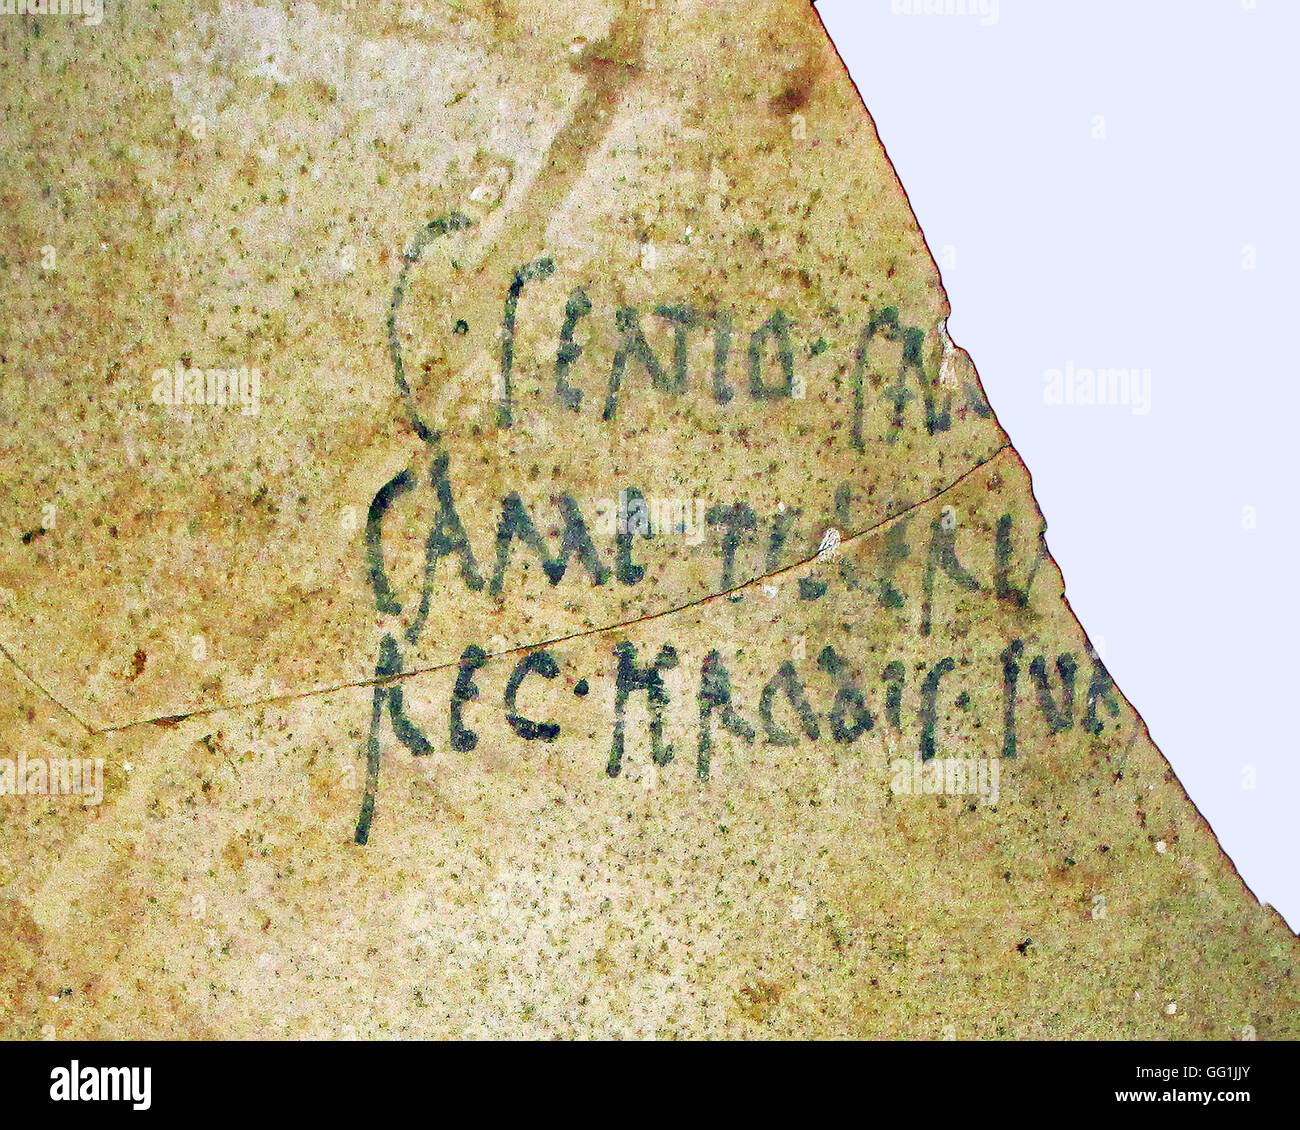 5875. Latin inscription on a wine jug (amphora) indicating that the wine was purchased by King Herod, sherds found - Stock Image